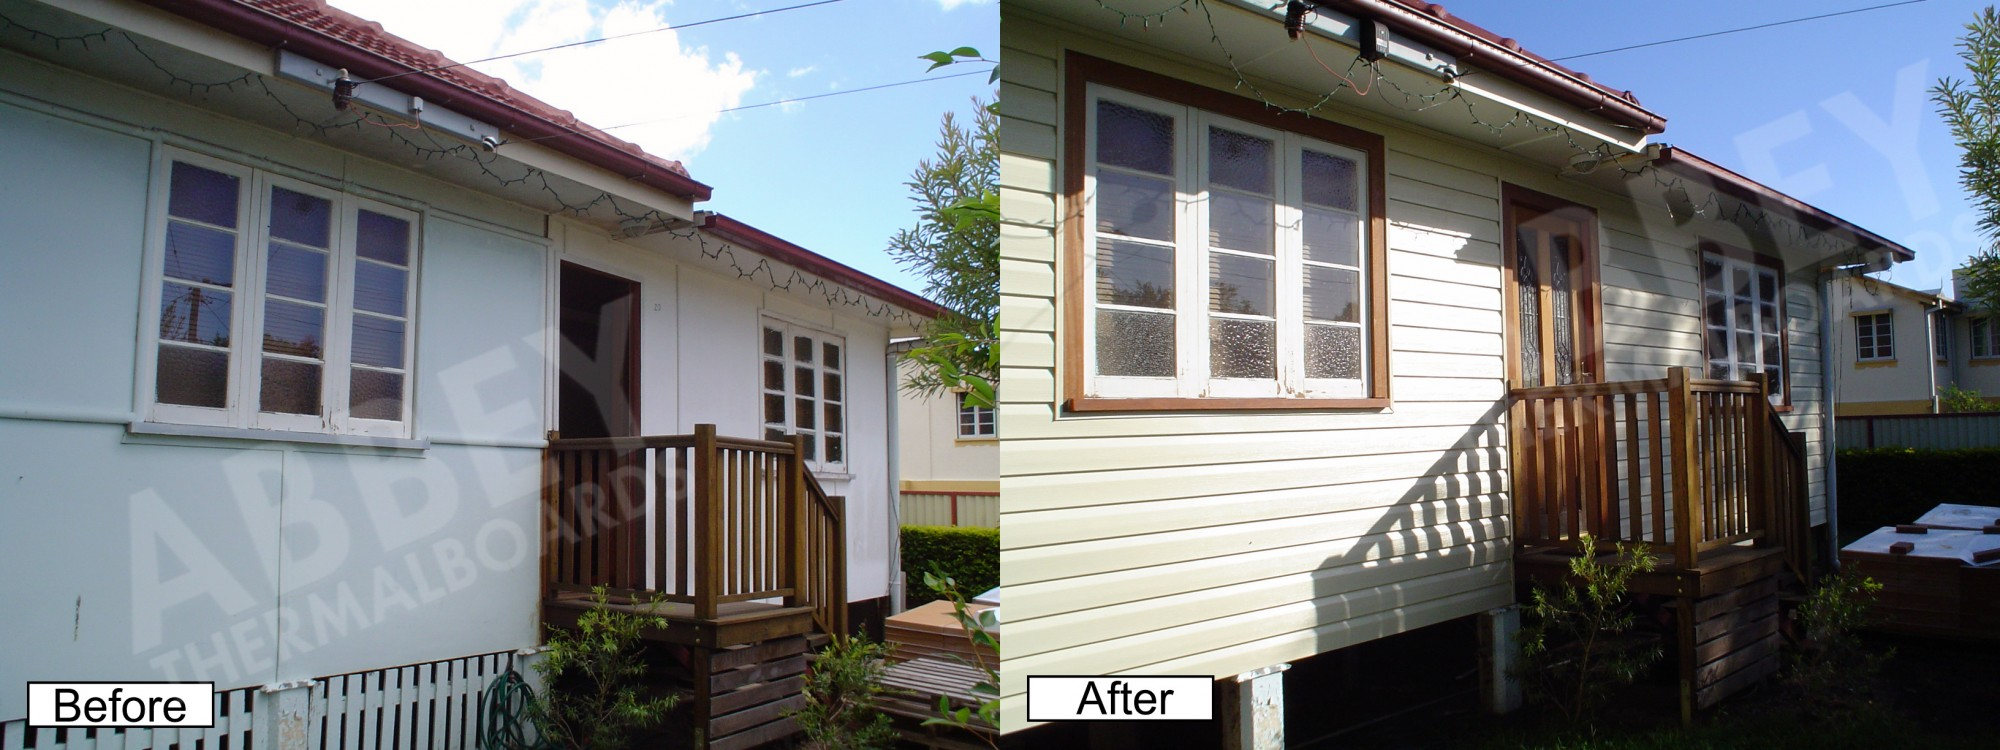 Close up view of before and after house cladding applied to the front of a home.